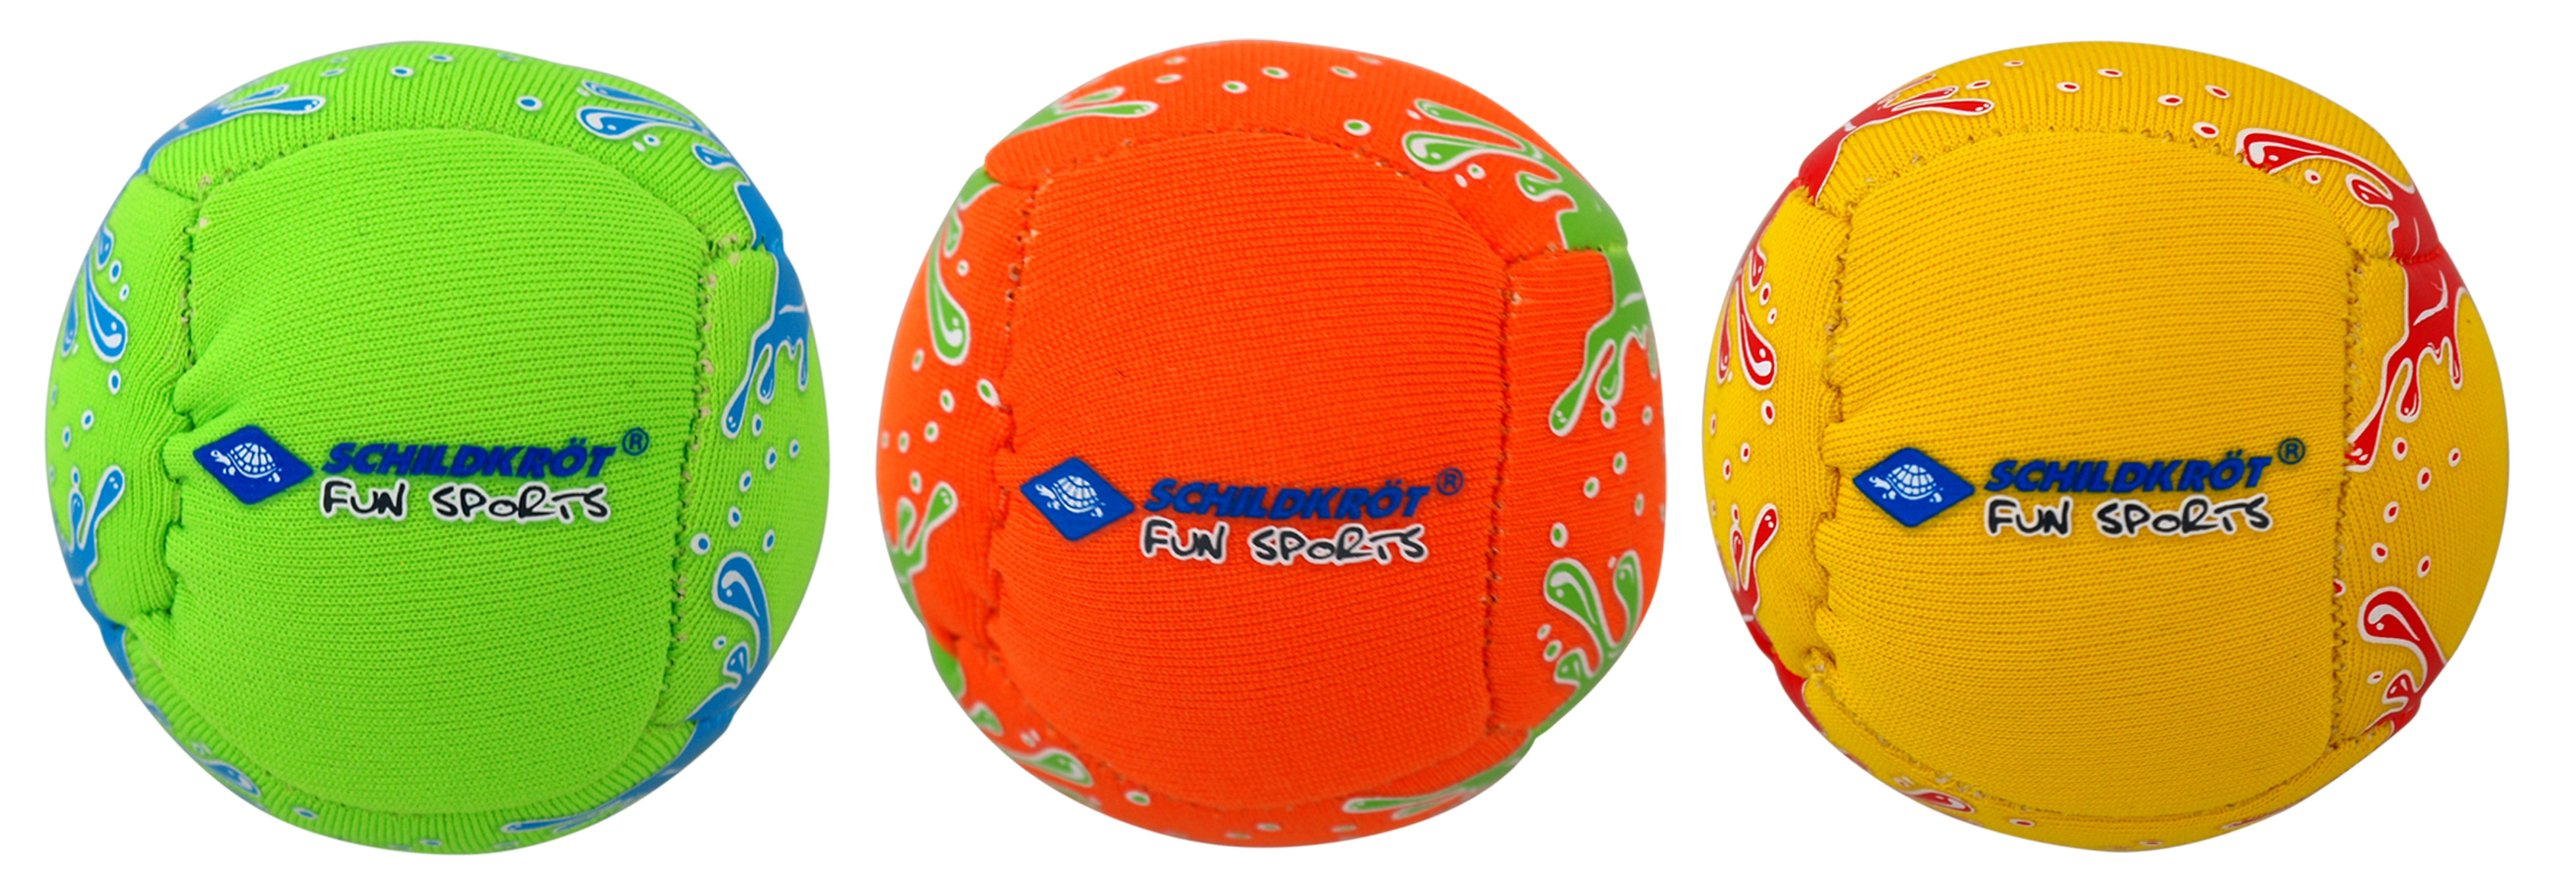 Schildkr?t Fun Sports Schildkrot Fun Sports Neoprene Fun Balls - Multi-Colour by